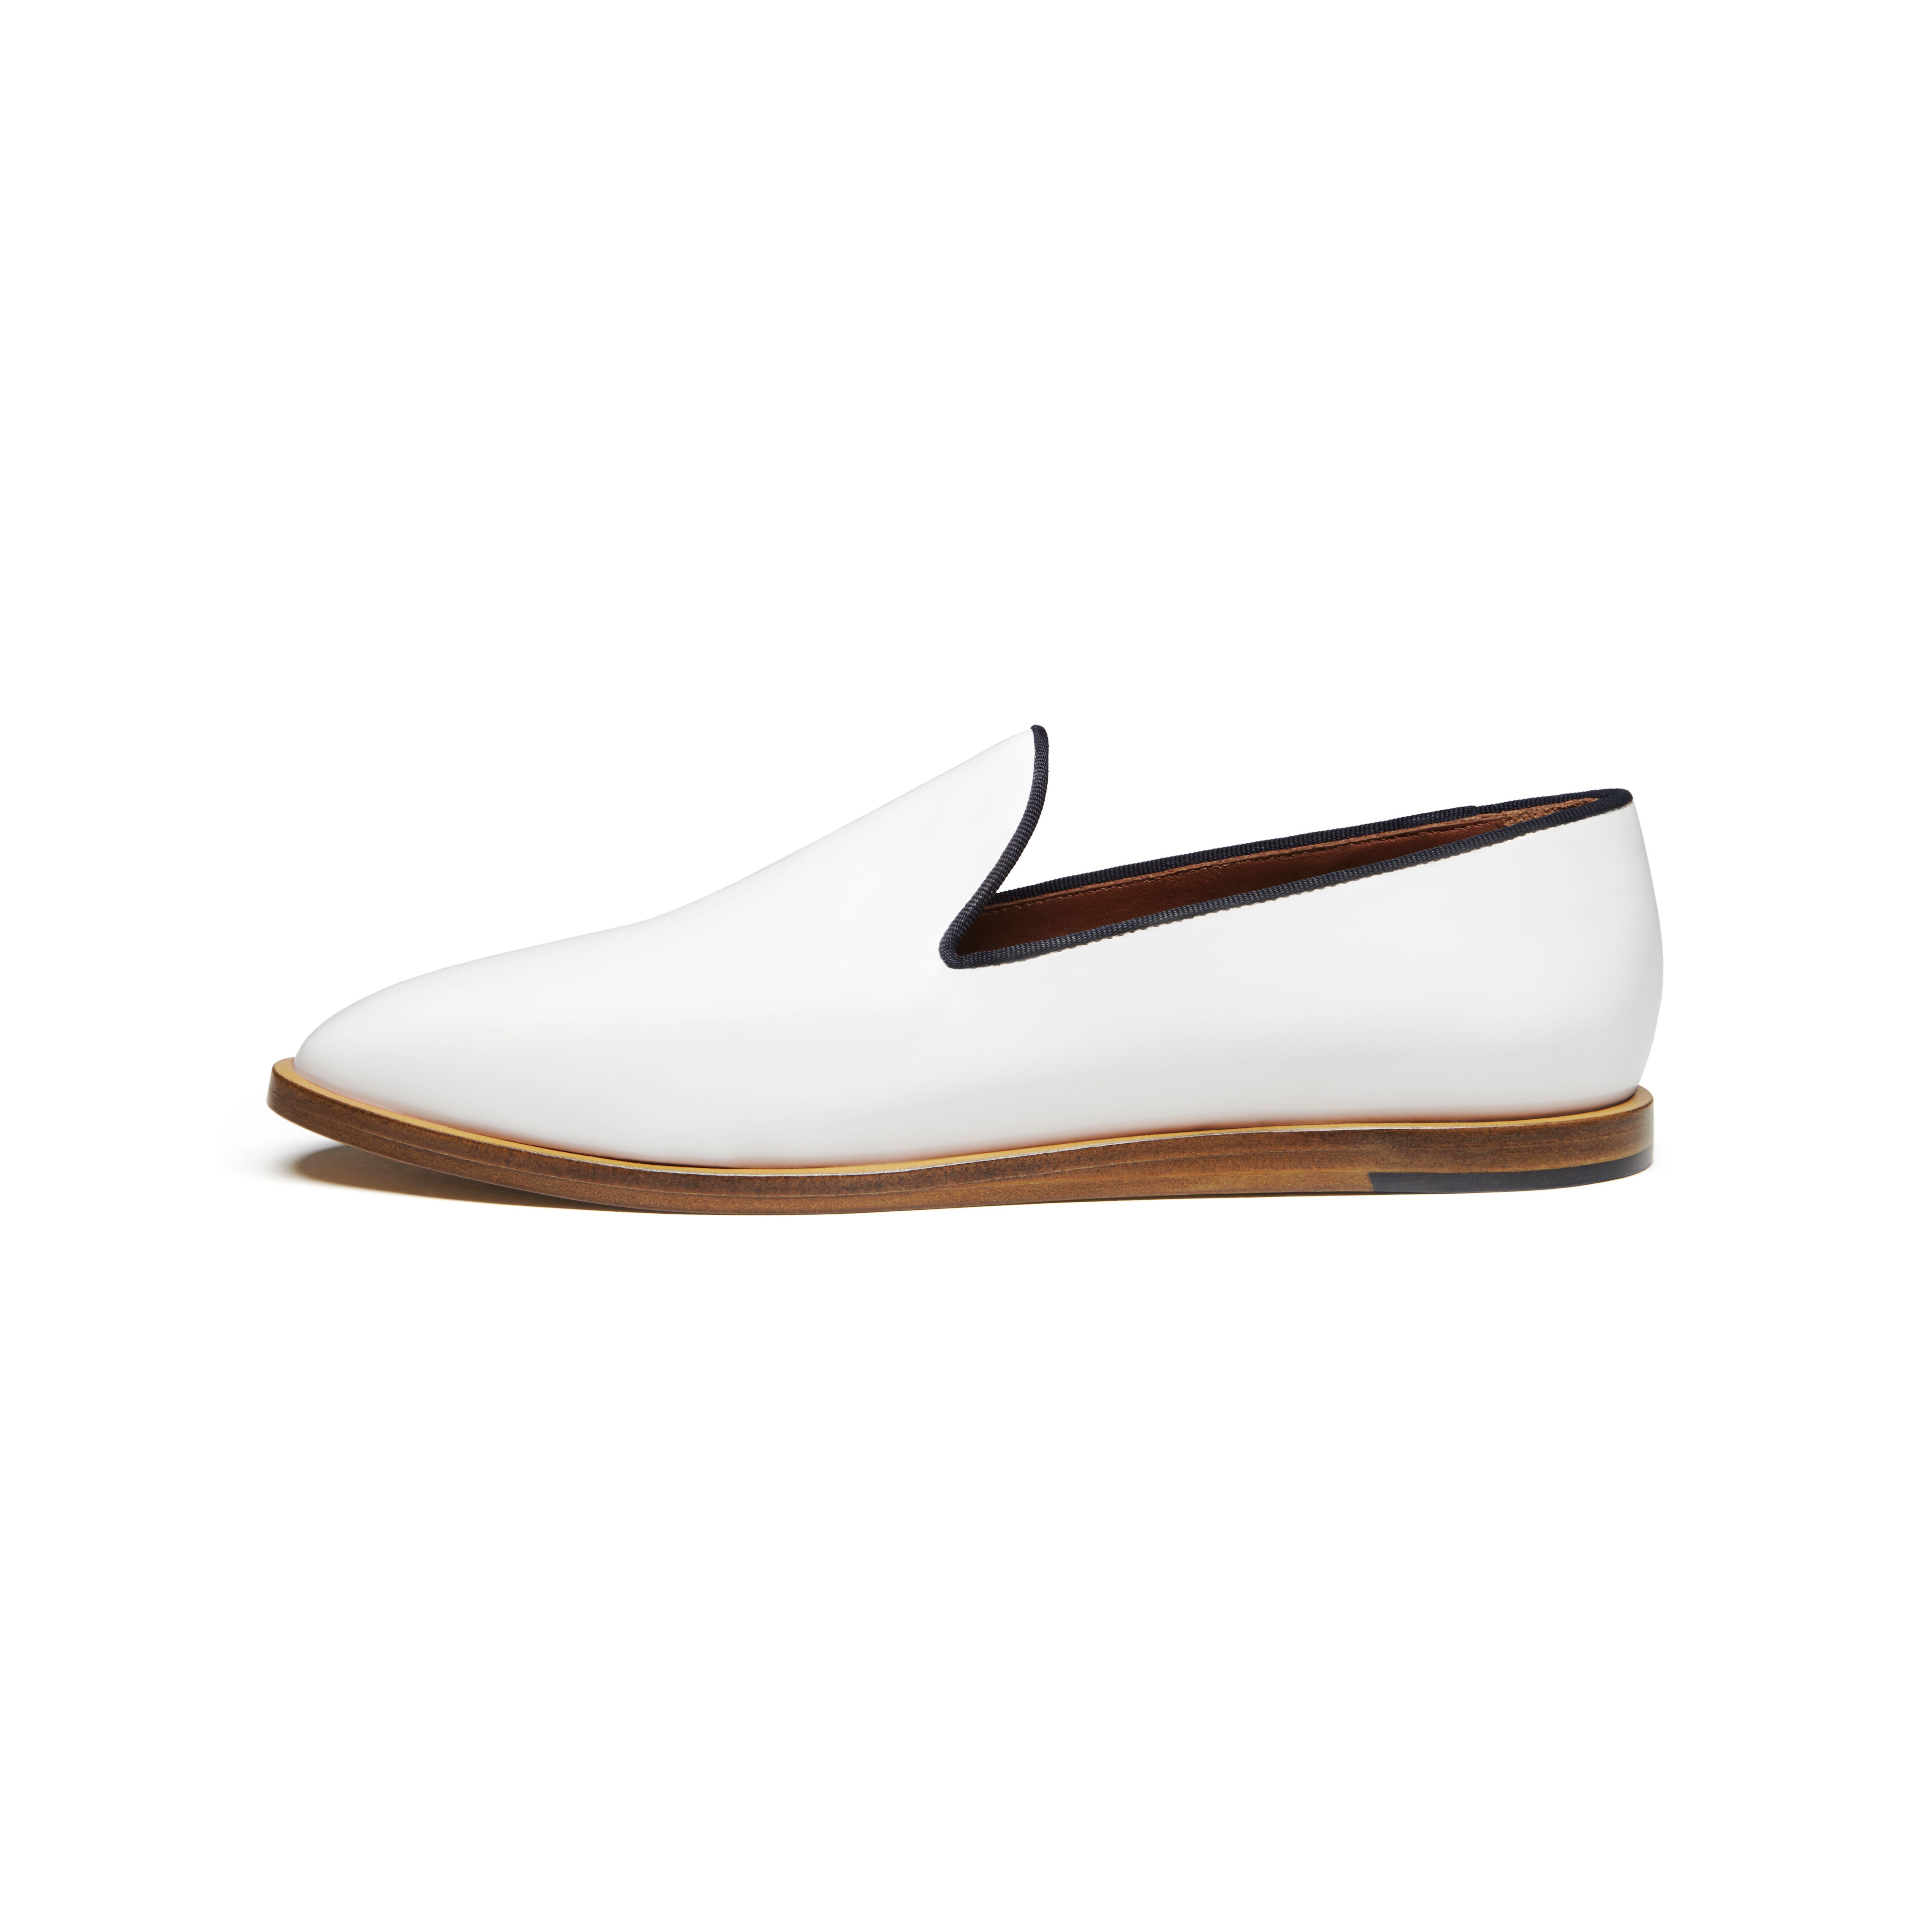 590e09f1fe7 Lyst - Mulberry Loafer in White